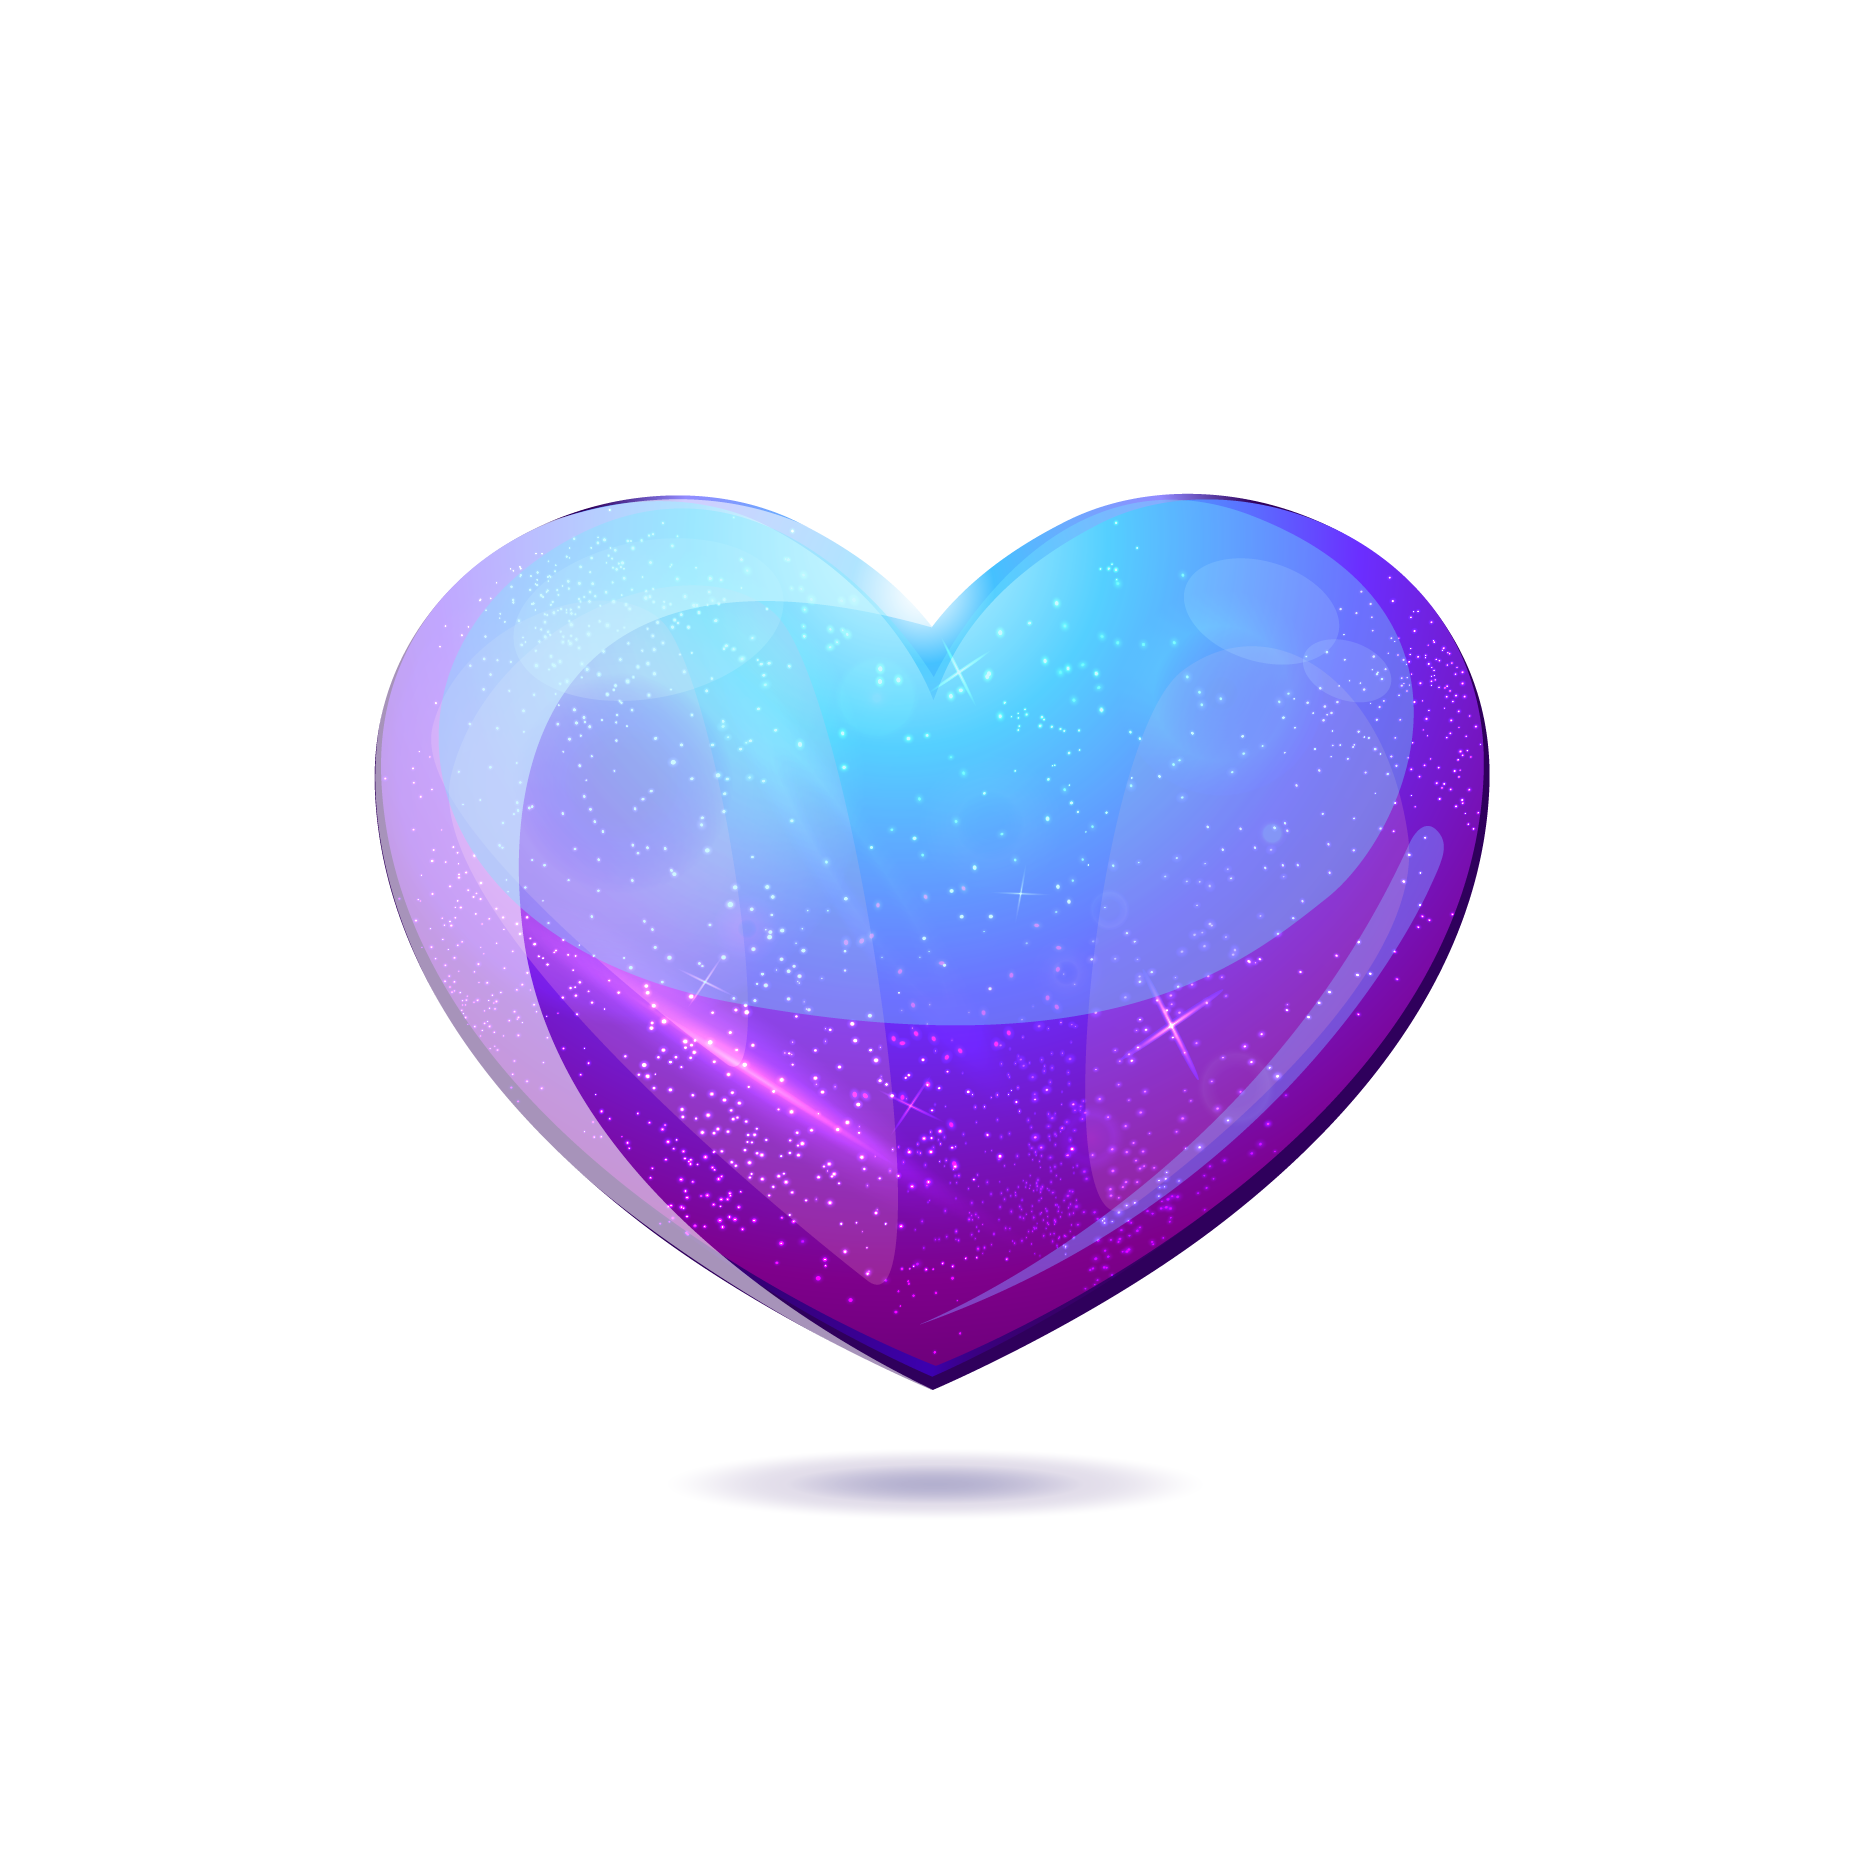 Purple heart for Accessible Design [Converted]